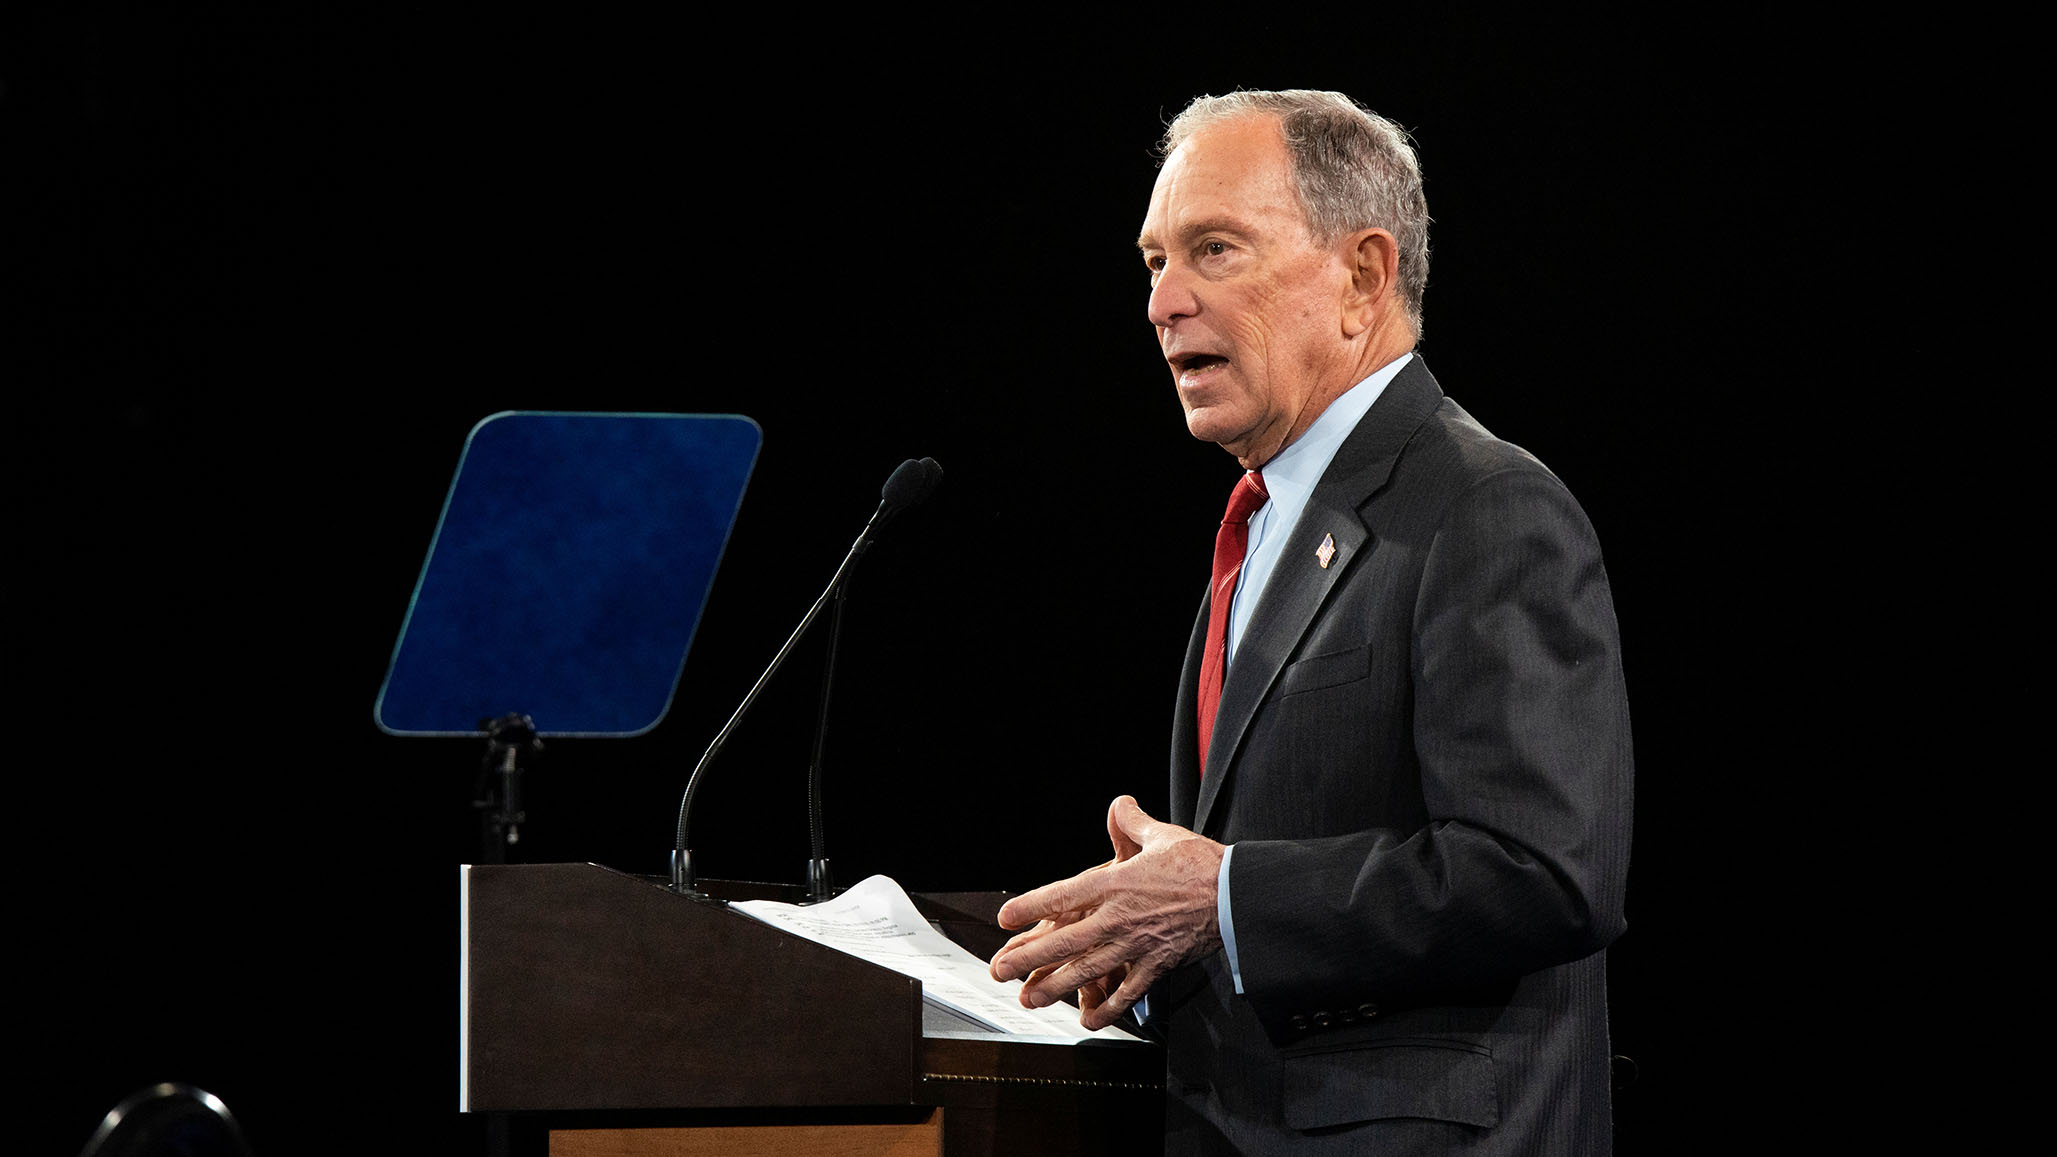 Bloomberg's Clean Transportation Plan Calls for Ending Production of Gas-Powered Cars by 2035